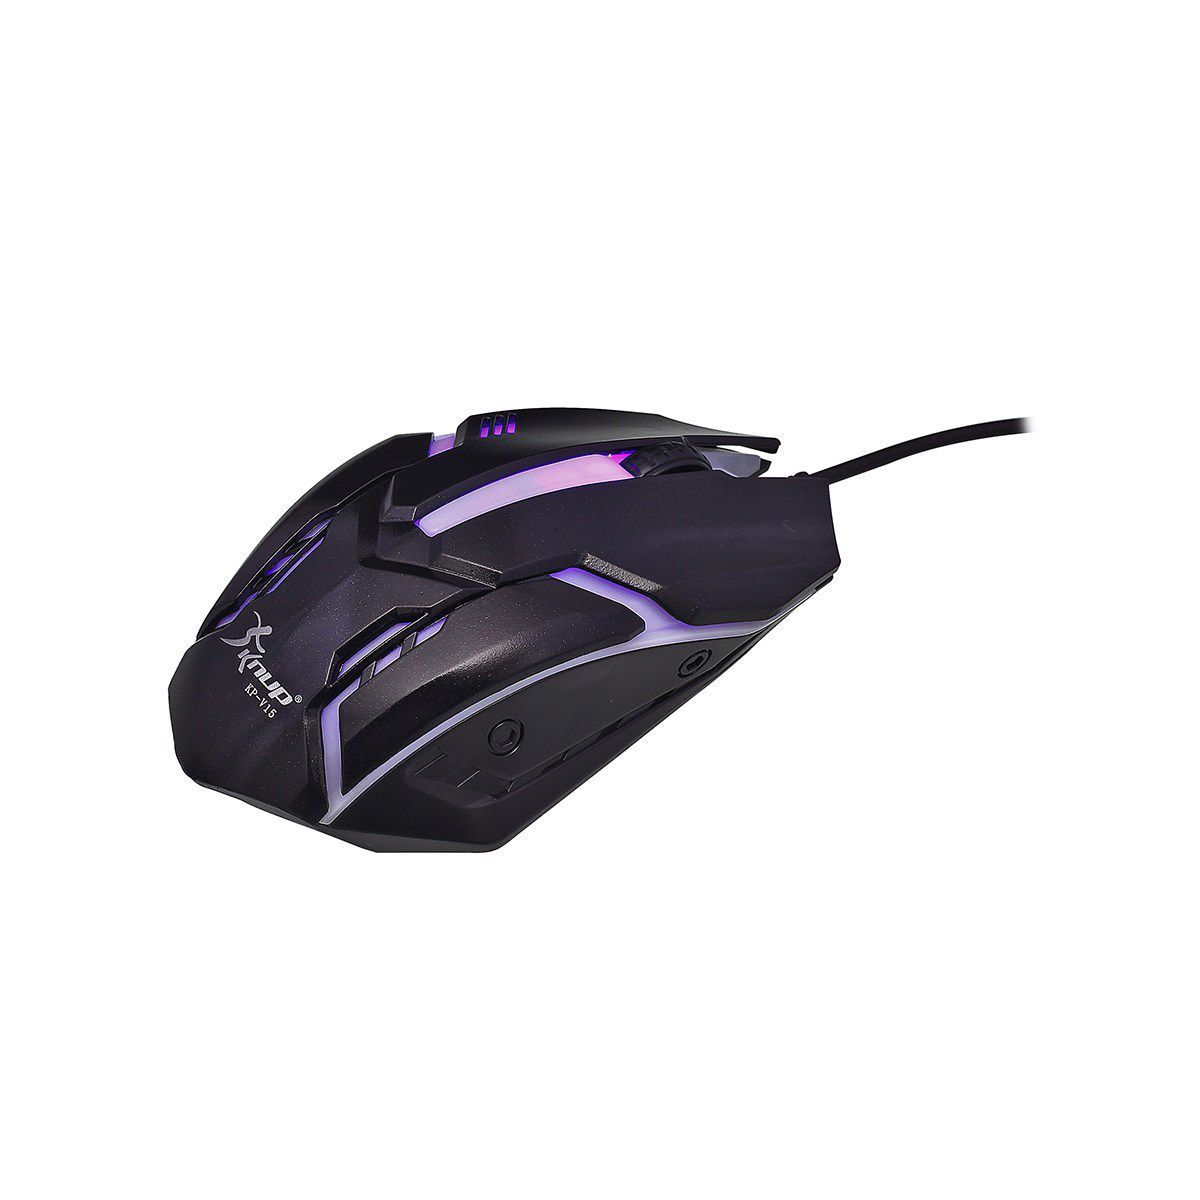 Mouse Knup Gamer 1600DPI C/ LED KP-V15